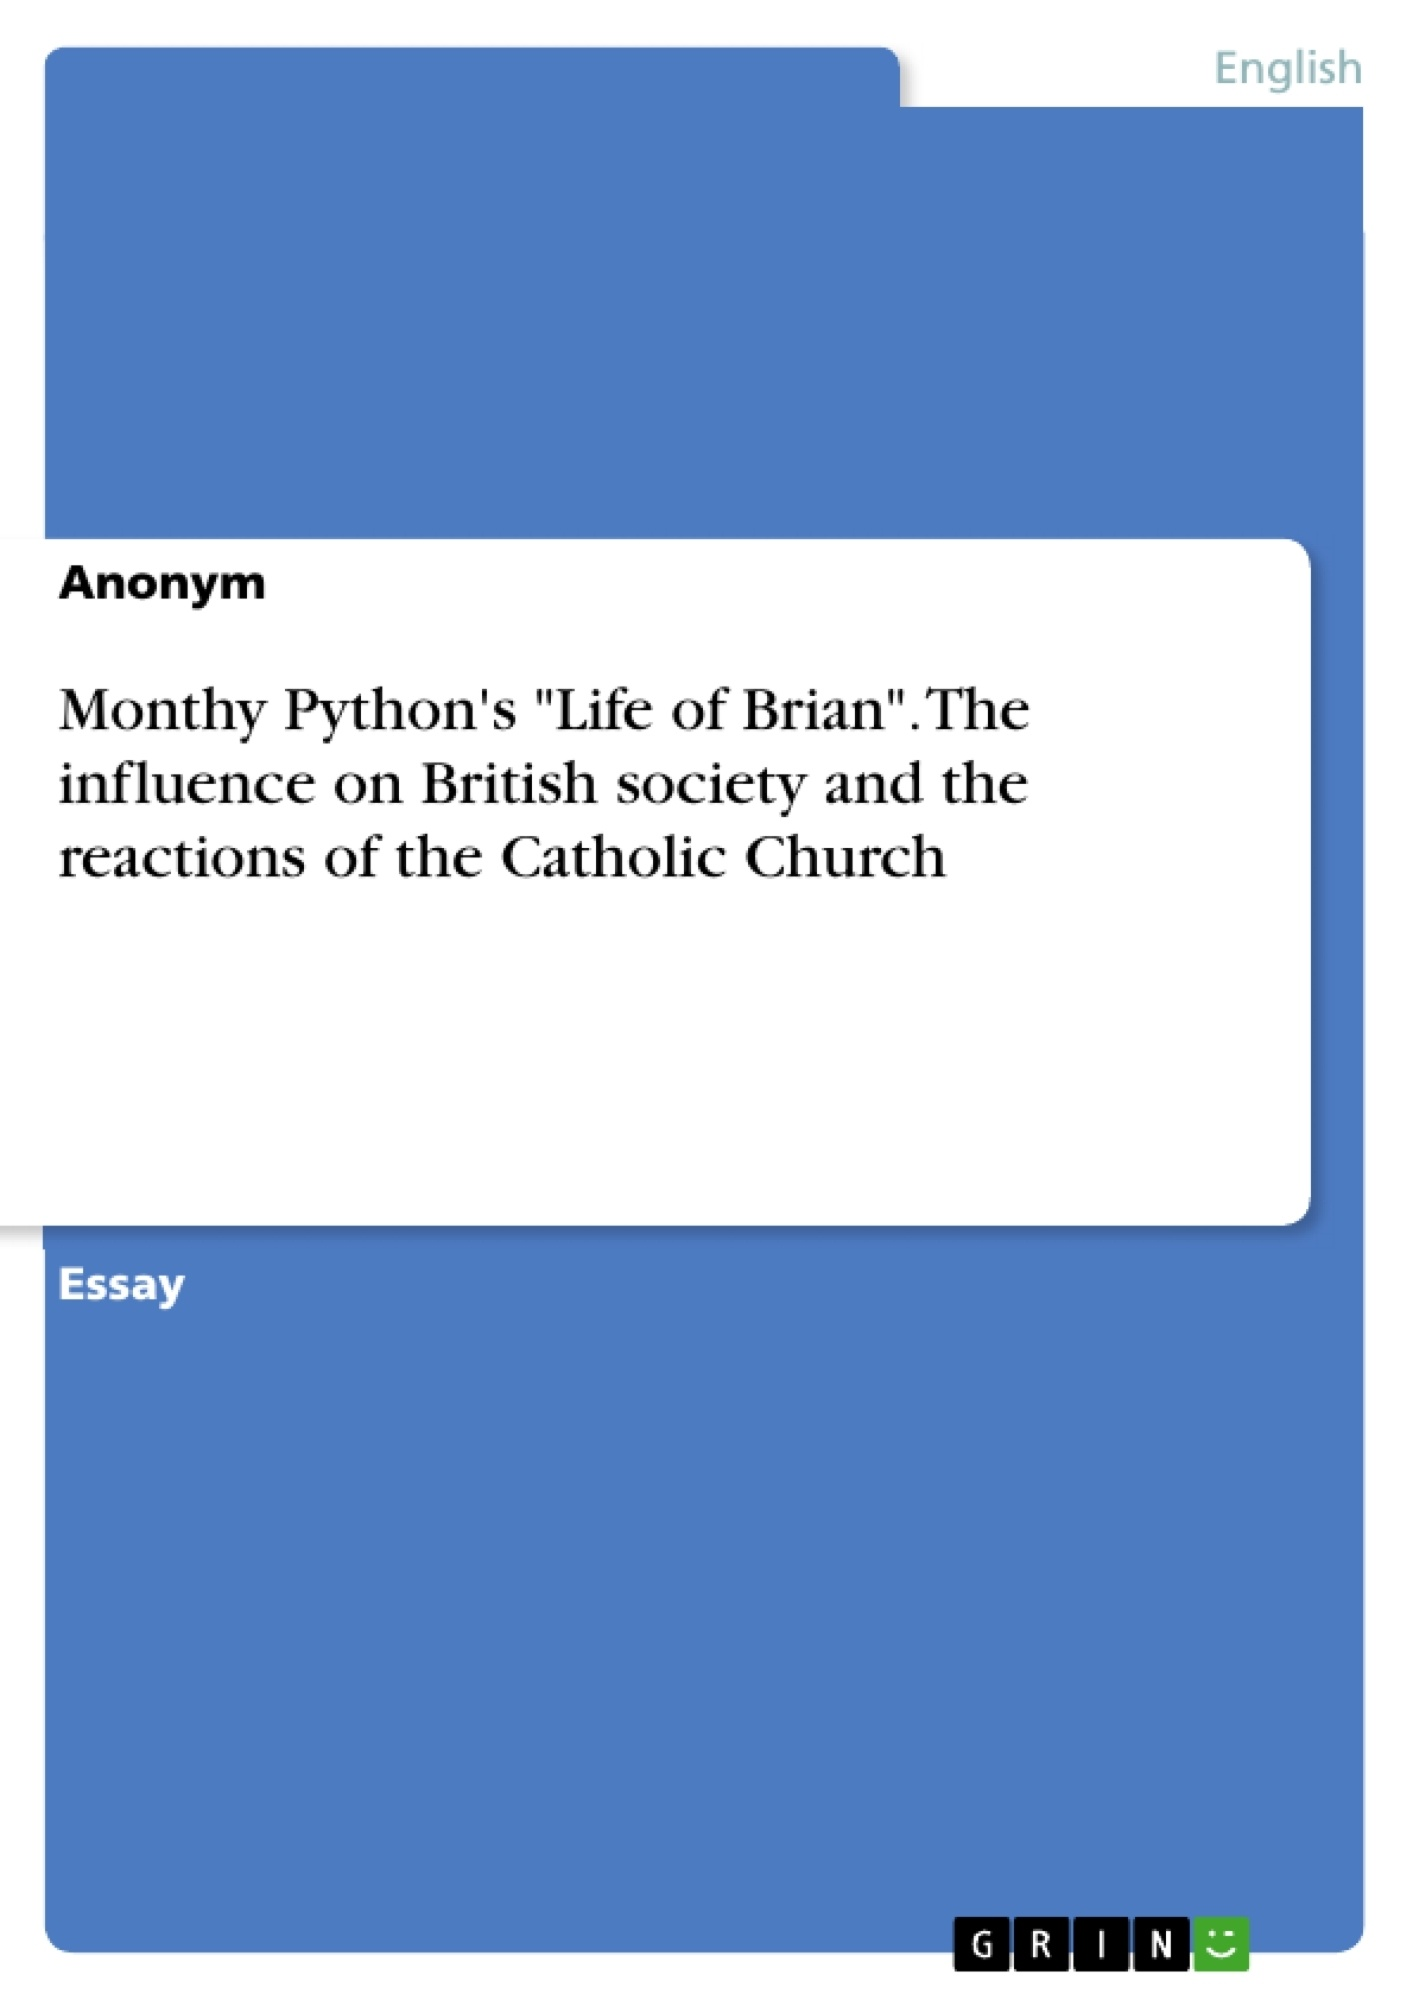 """Title: Monthy Python's """"Life of Brian"""". The influence on British society and the reactions of the Catholic Church"""